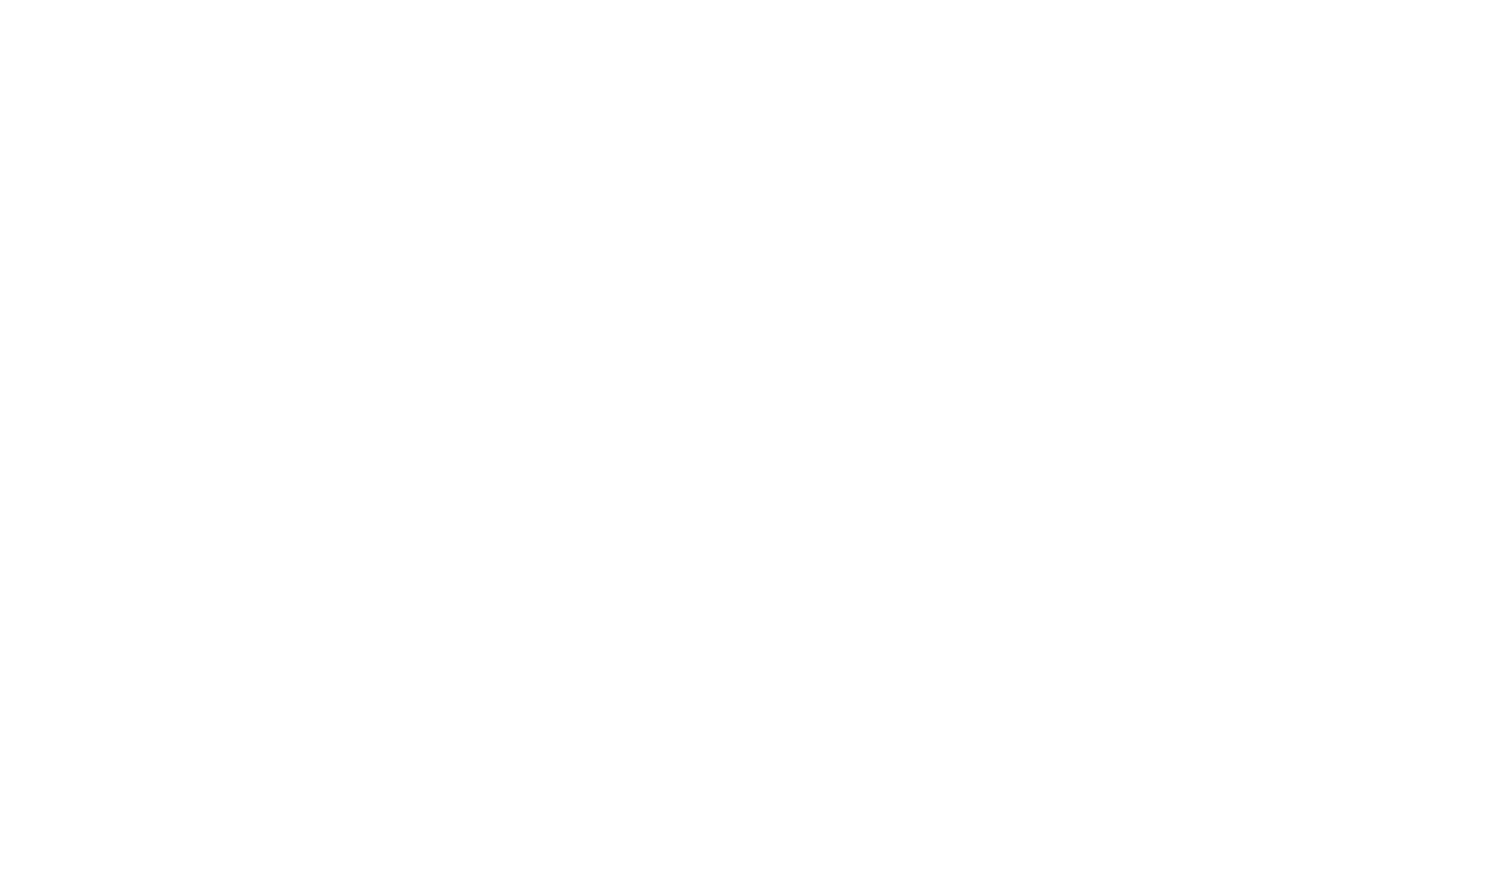 Wisconsin Indoor Advertising